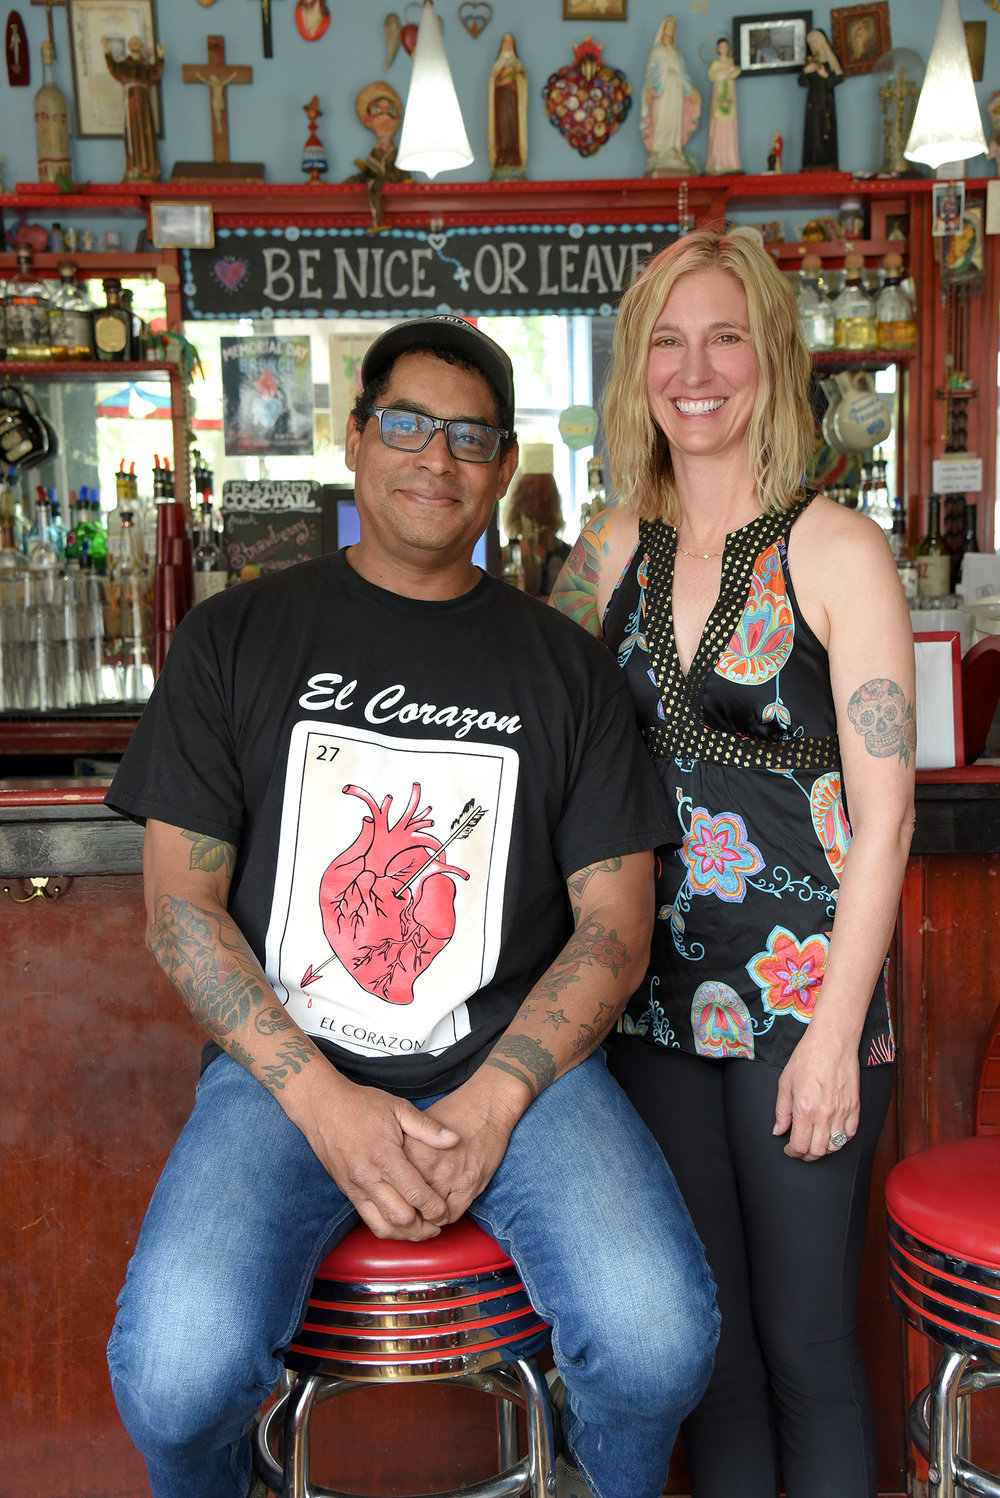 George Mireles (Owner, Cafe Corazon), Wendy Mireles (Owner, Cafe Corazon) - Photo By Katy Rowe (Artist Group).JPG